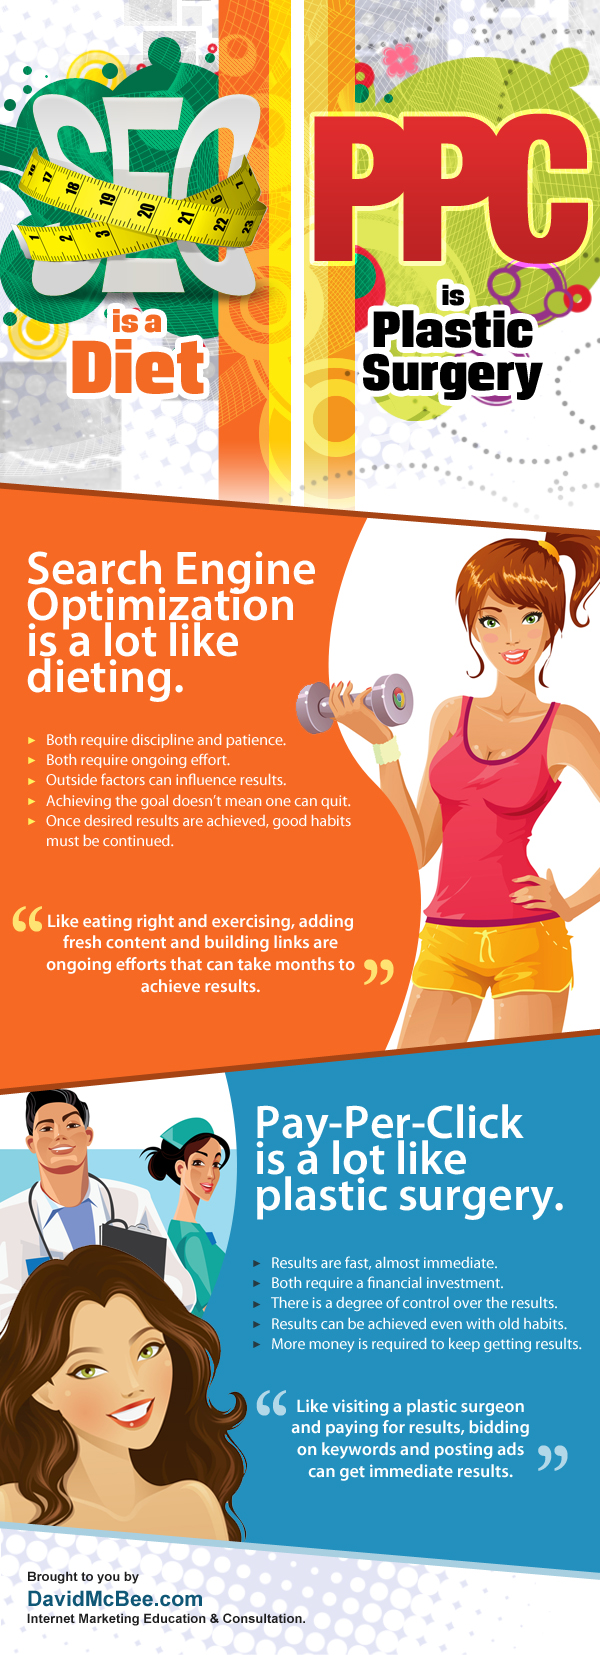 SEO vs PPC Infographic: SEO is like a diet, PPC is like plastic surgery.